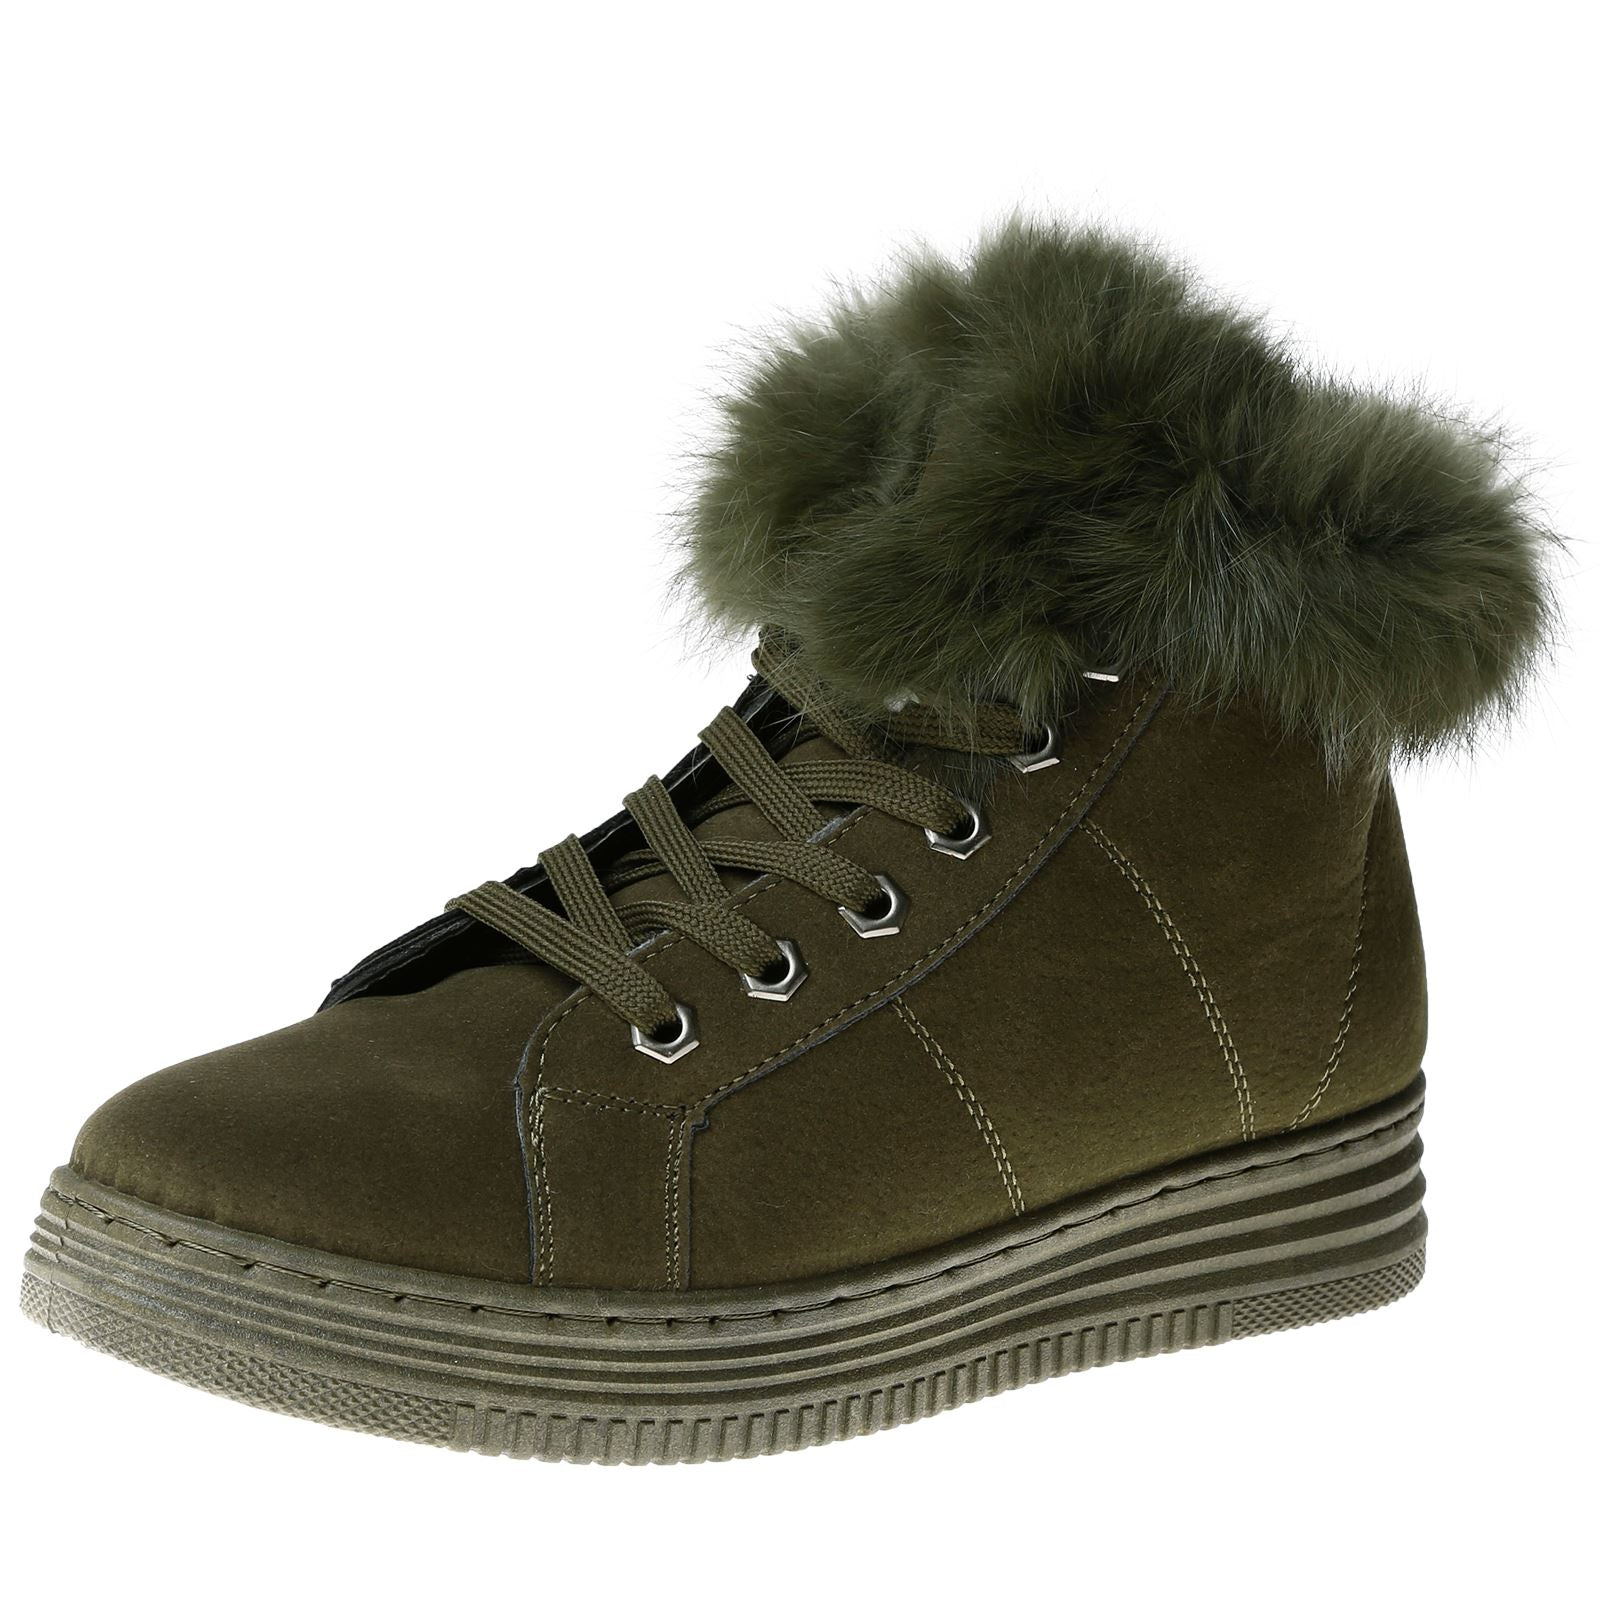 Jaina Fur Lined High Top Trainers in Olive Green Faux Suede